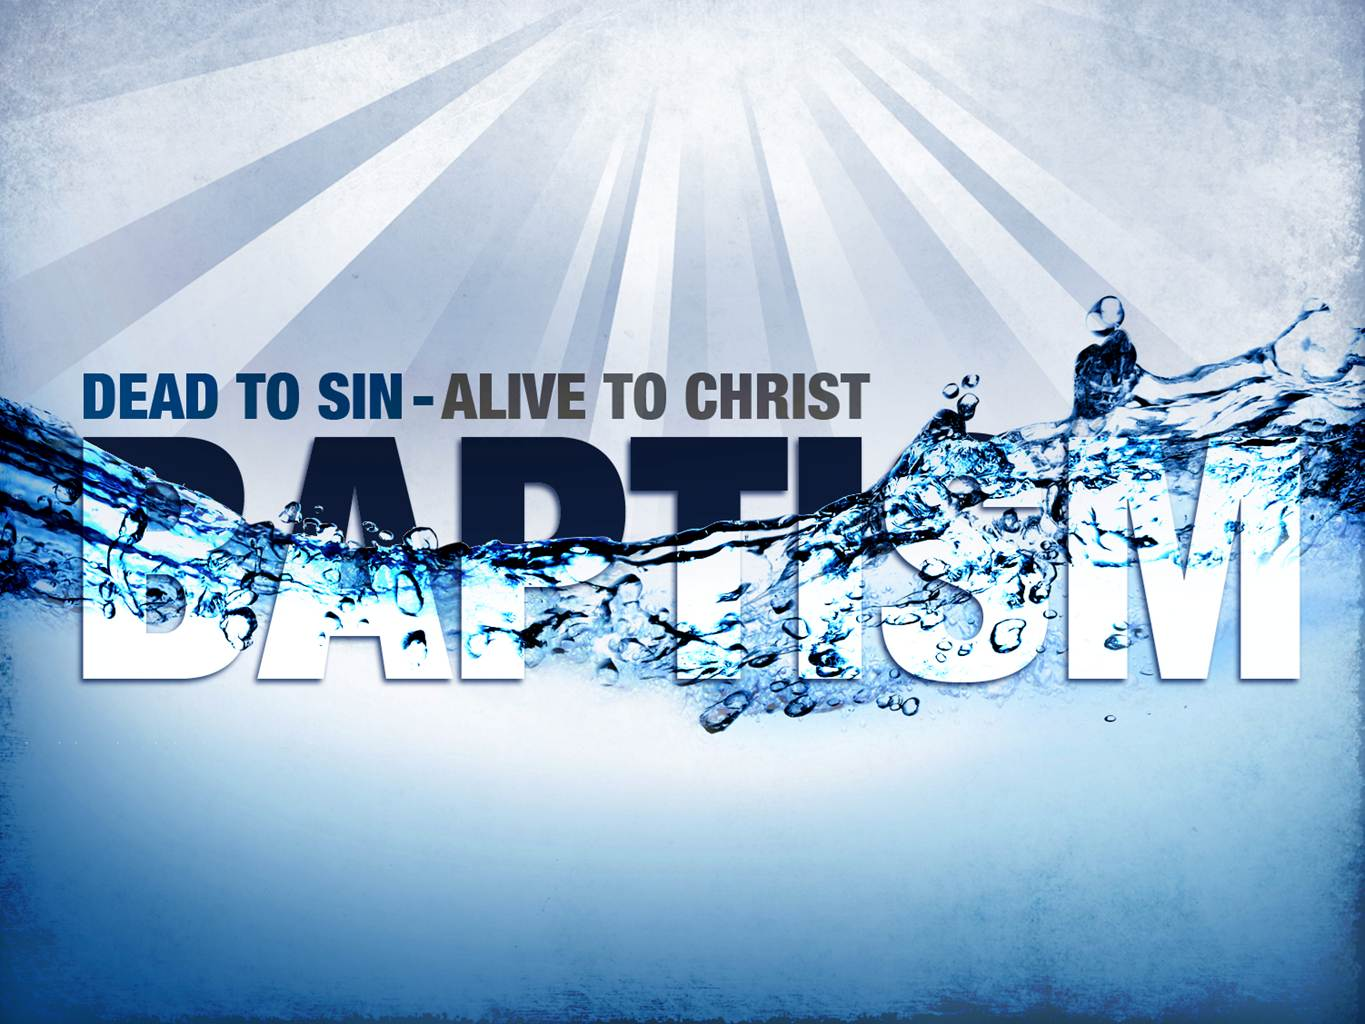 Baptism and the holy spirit